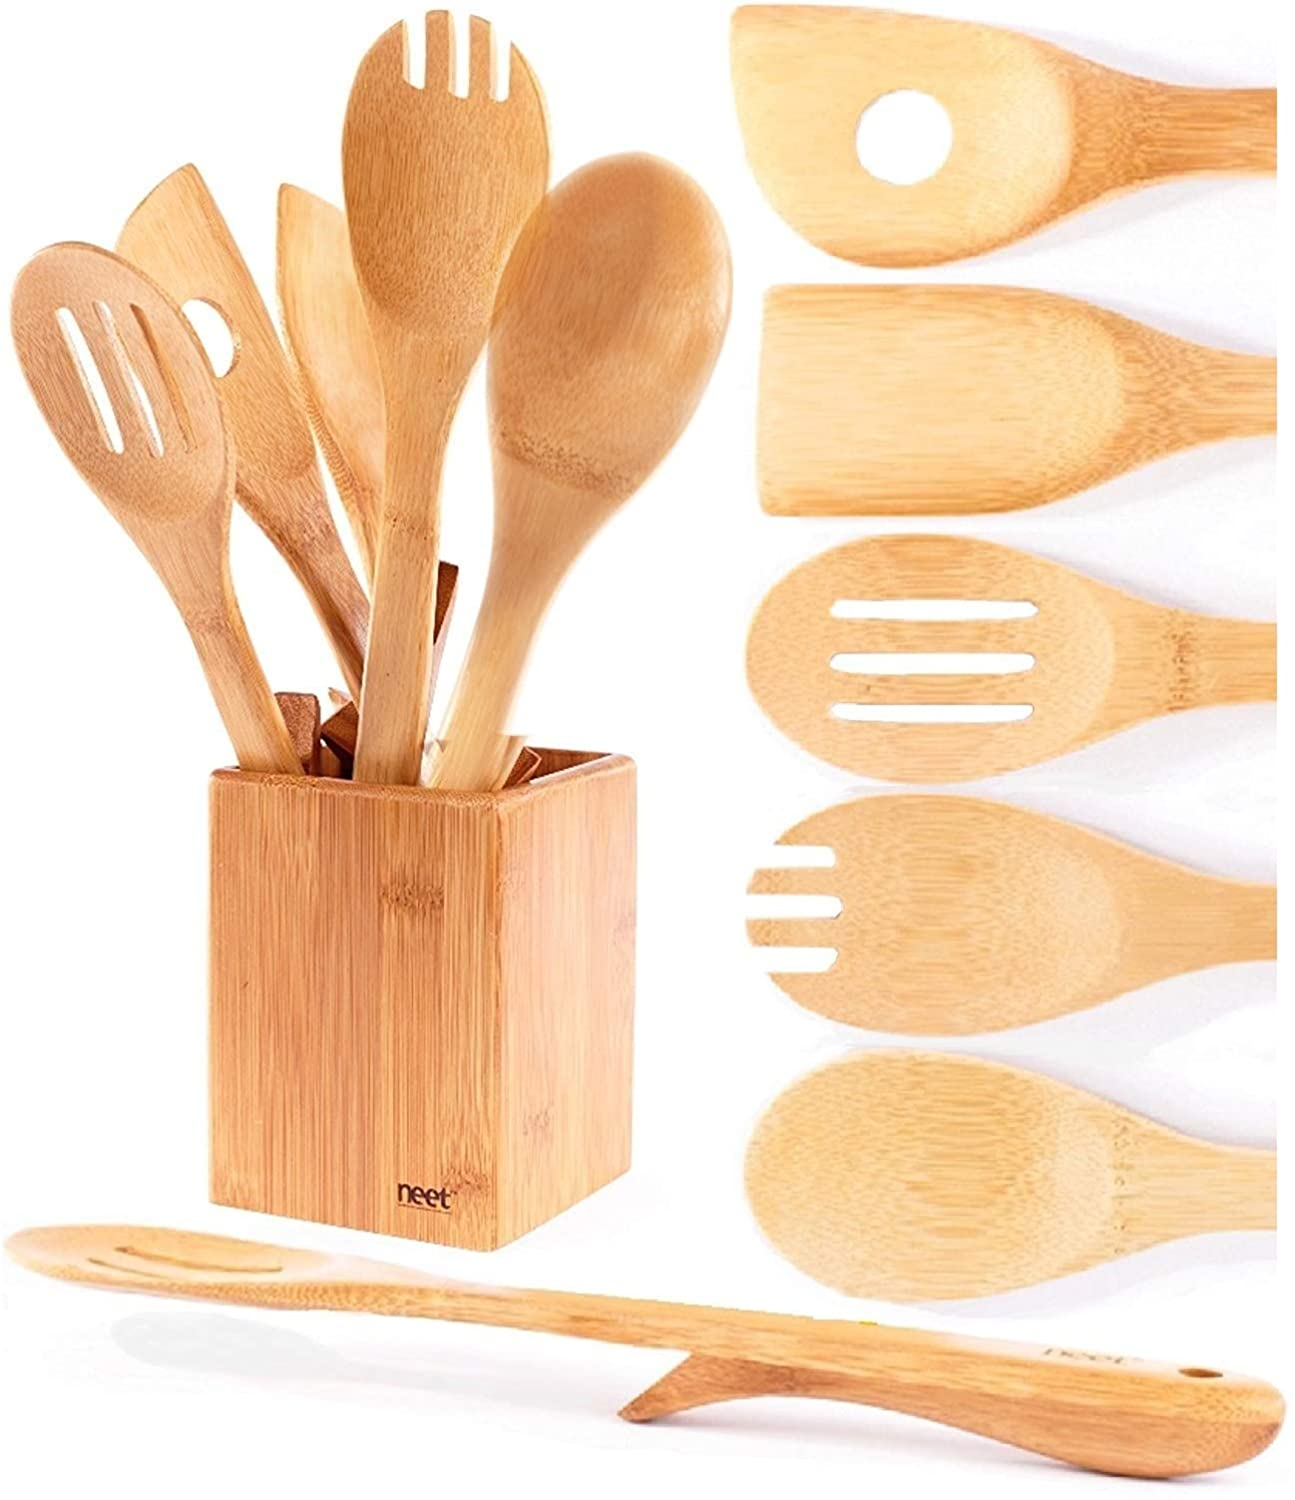 Organic bamboo cooking utensils set unique elevation feature 6 piece set wooden spoons spatula kitchen utensil set high heat resistant wood serving